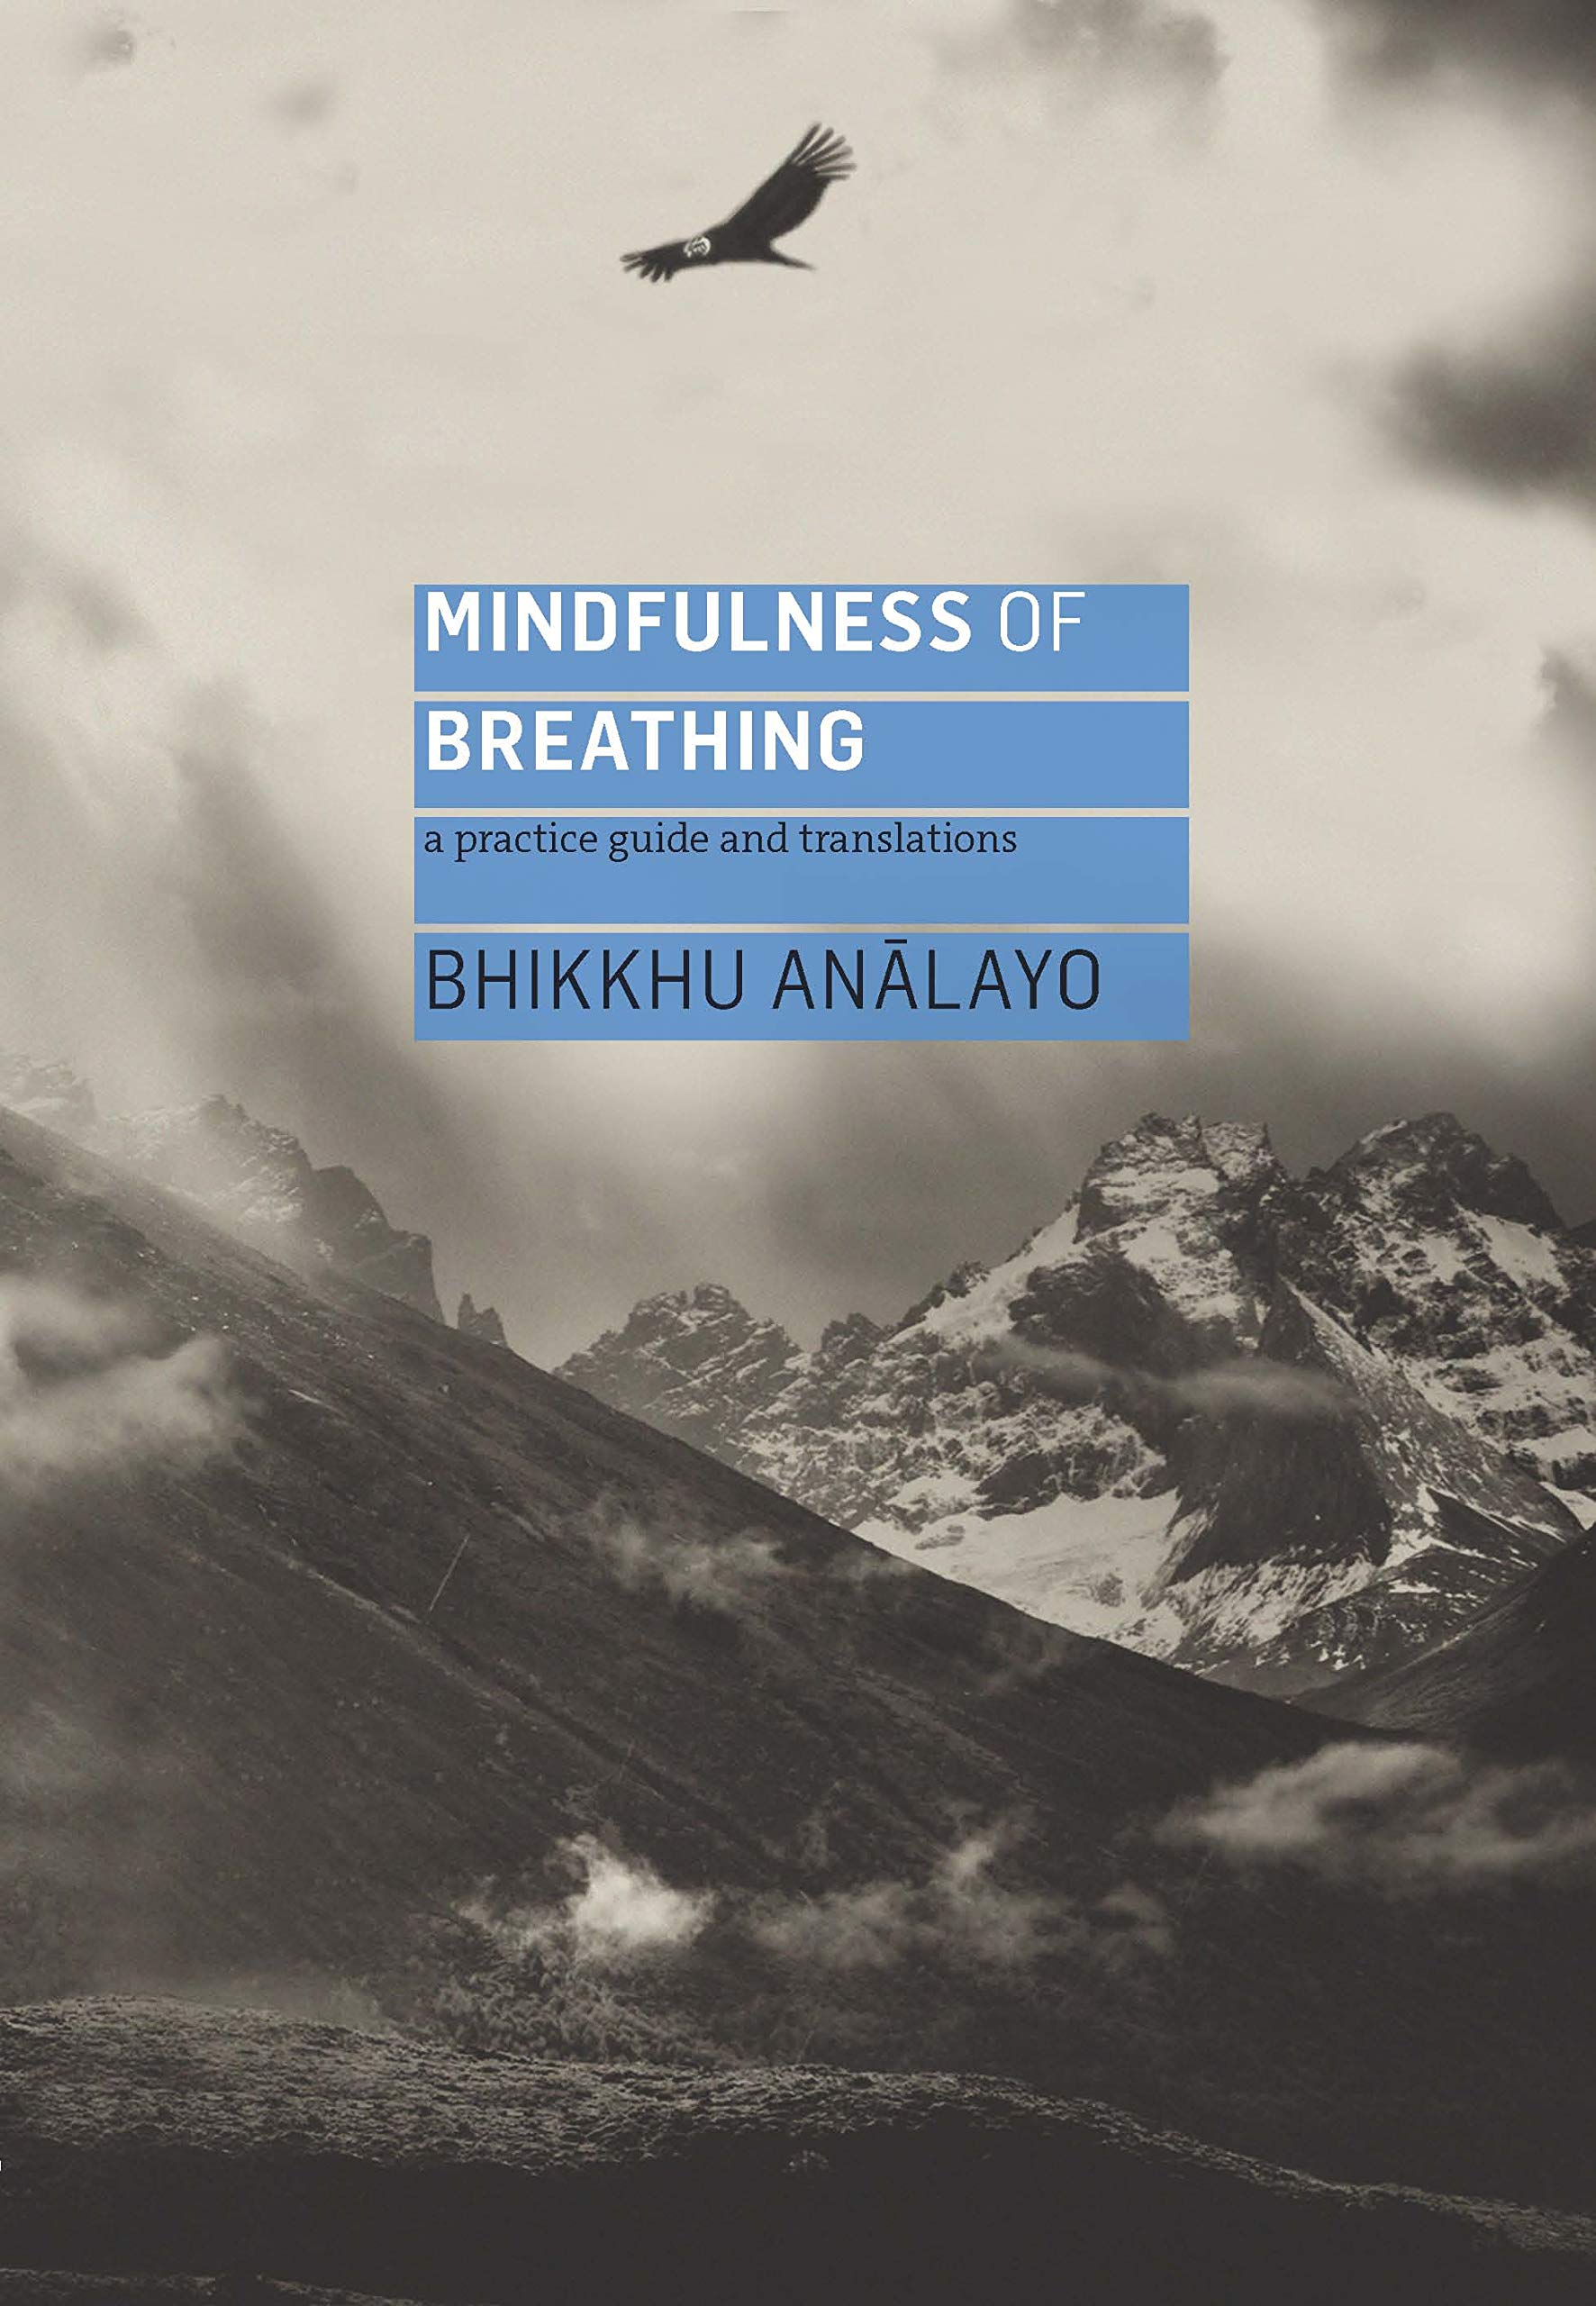 Analayo Mindfulness of Breathing Practice Guide cover art